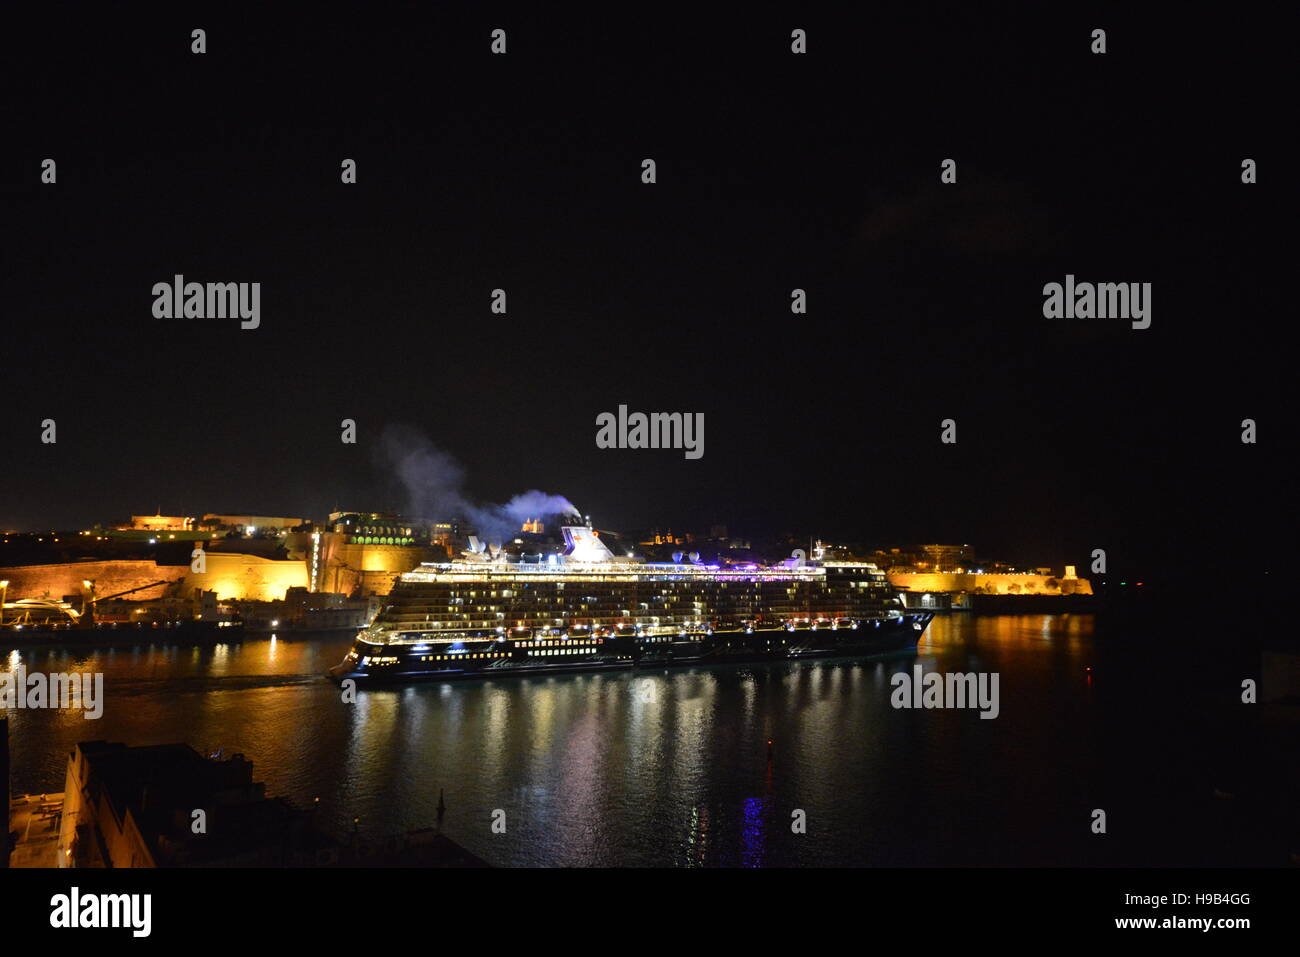 The Mein Schiff 3 cruise ship, operated by TUI, as it was departing the Grand Harbour in Malta at night time - Stock Image